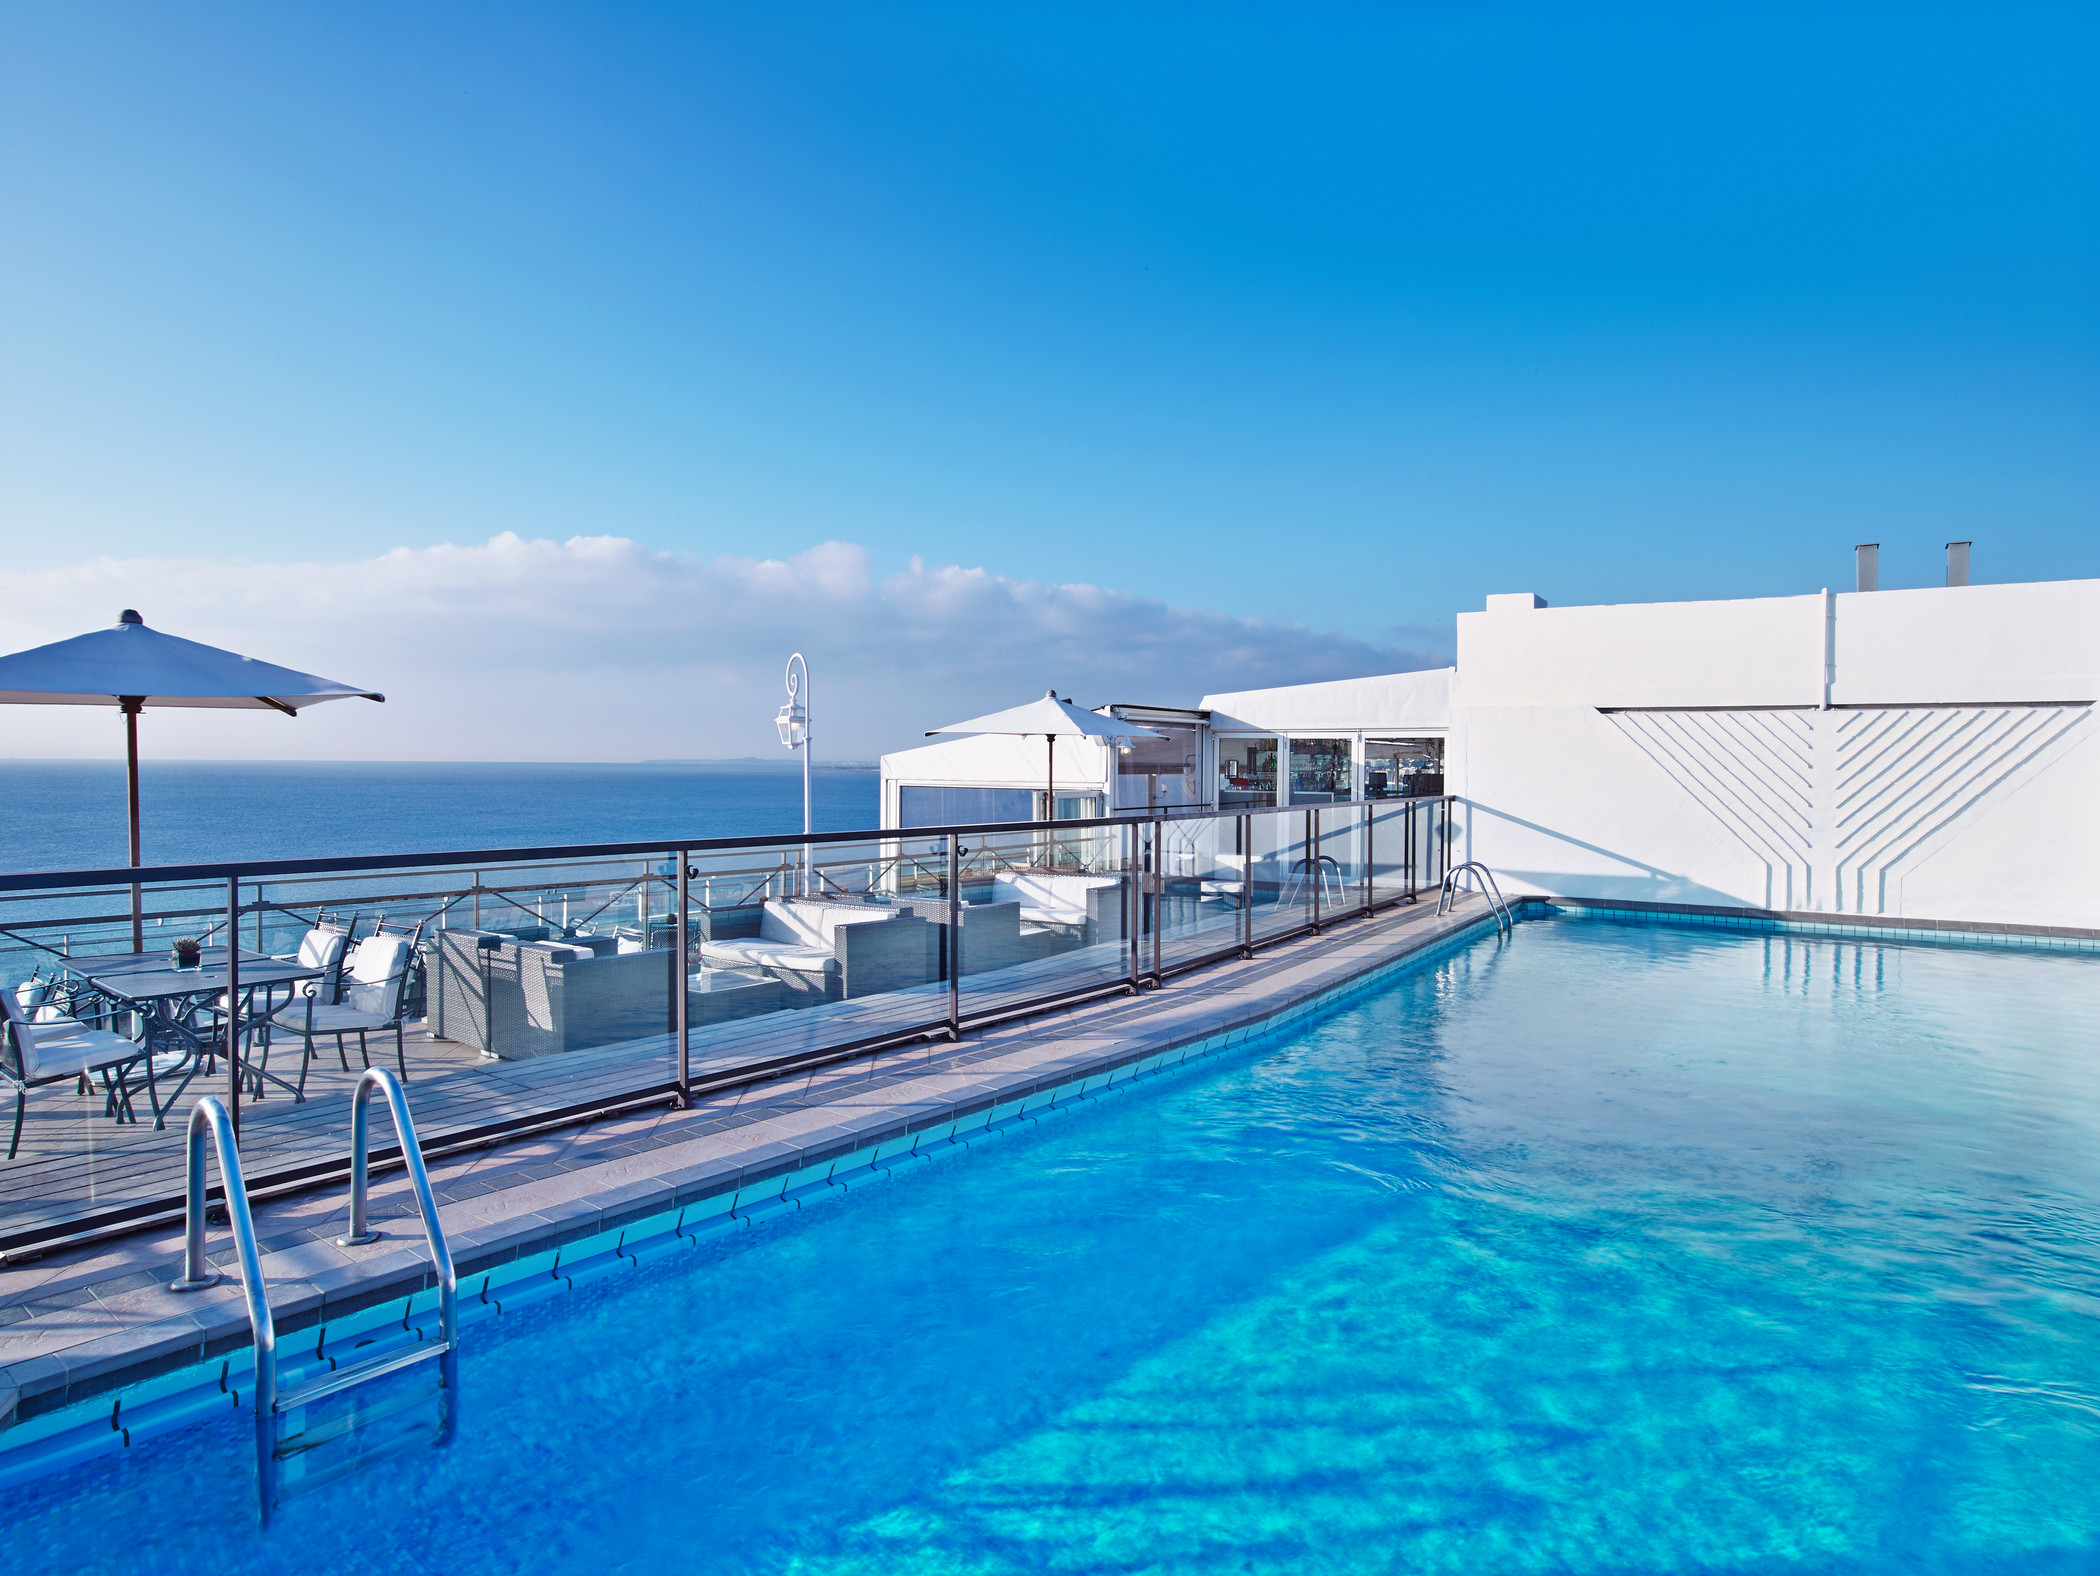 Rooftop pool overlooking the mediterranean le meridien for La piscine pool bar restaurant